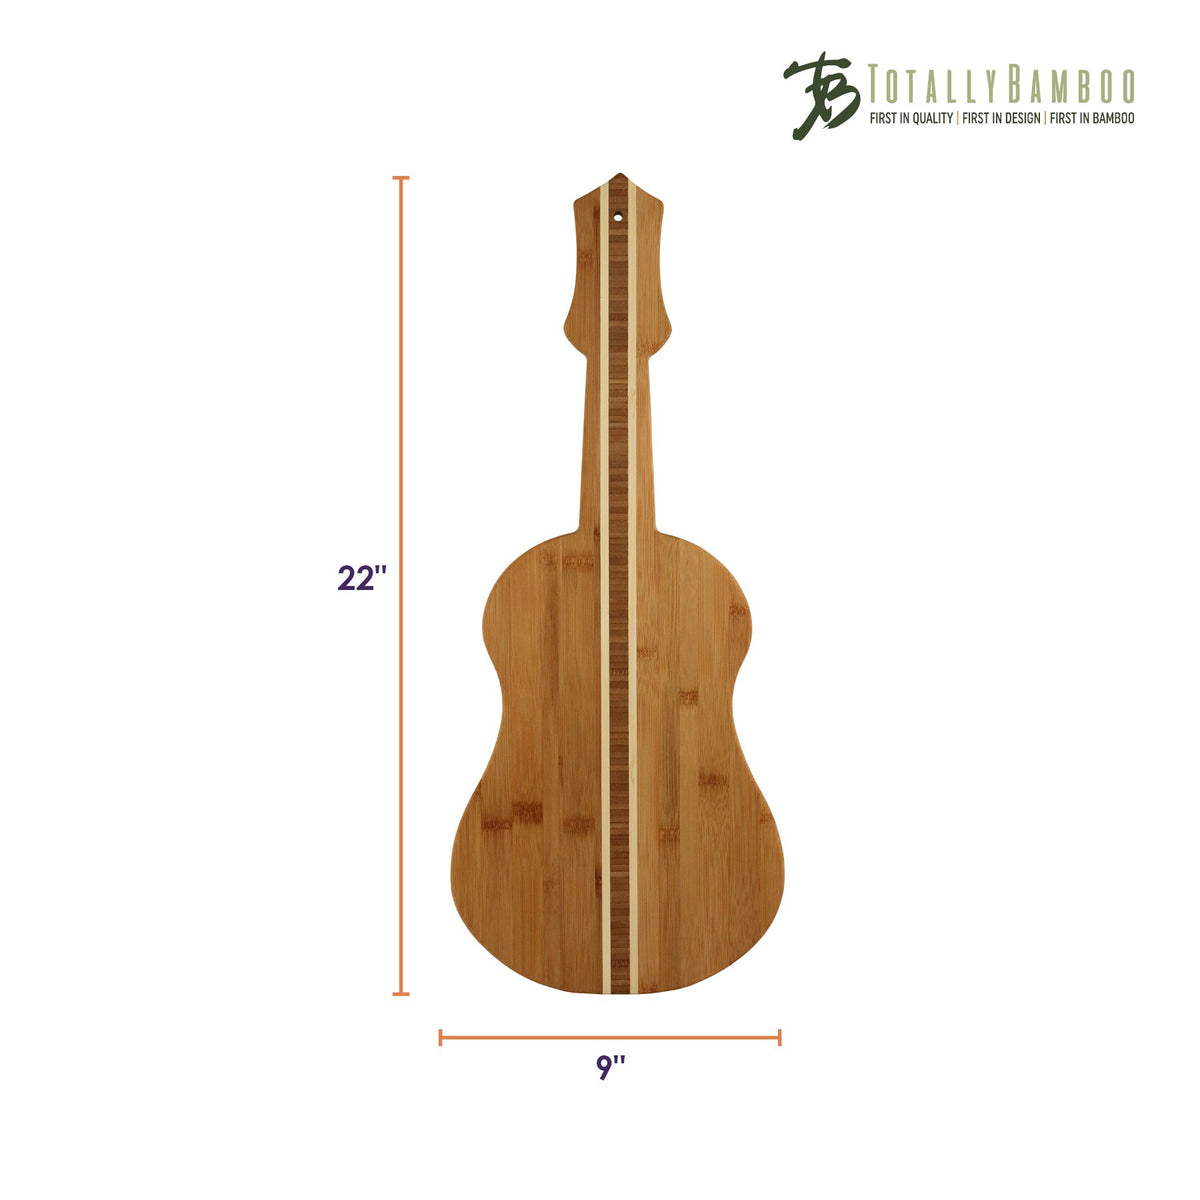 Totally Bamboo - Ukulele Cutting & Serving Board